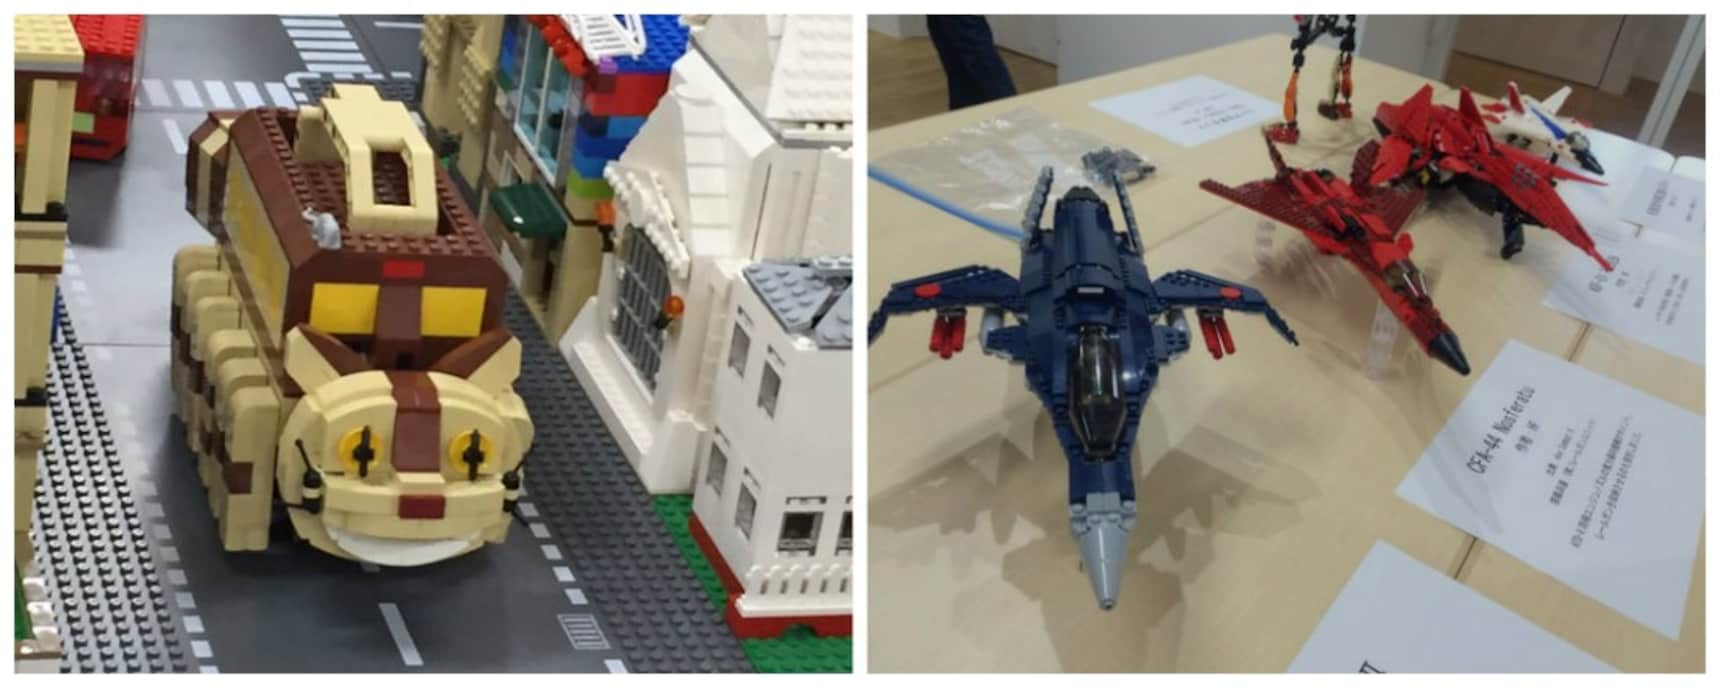 Anime Characters & Aircraft Get Lego-ized